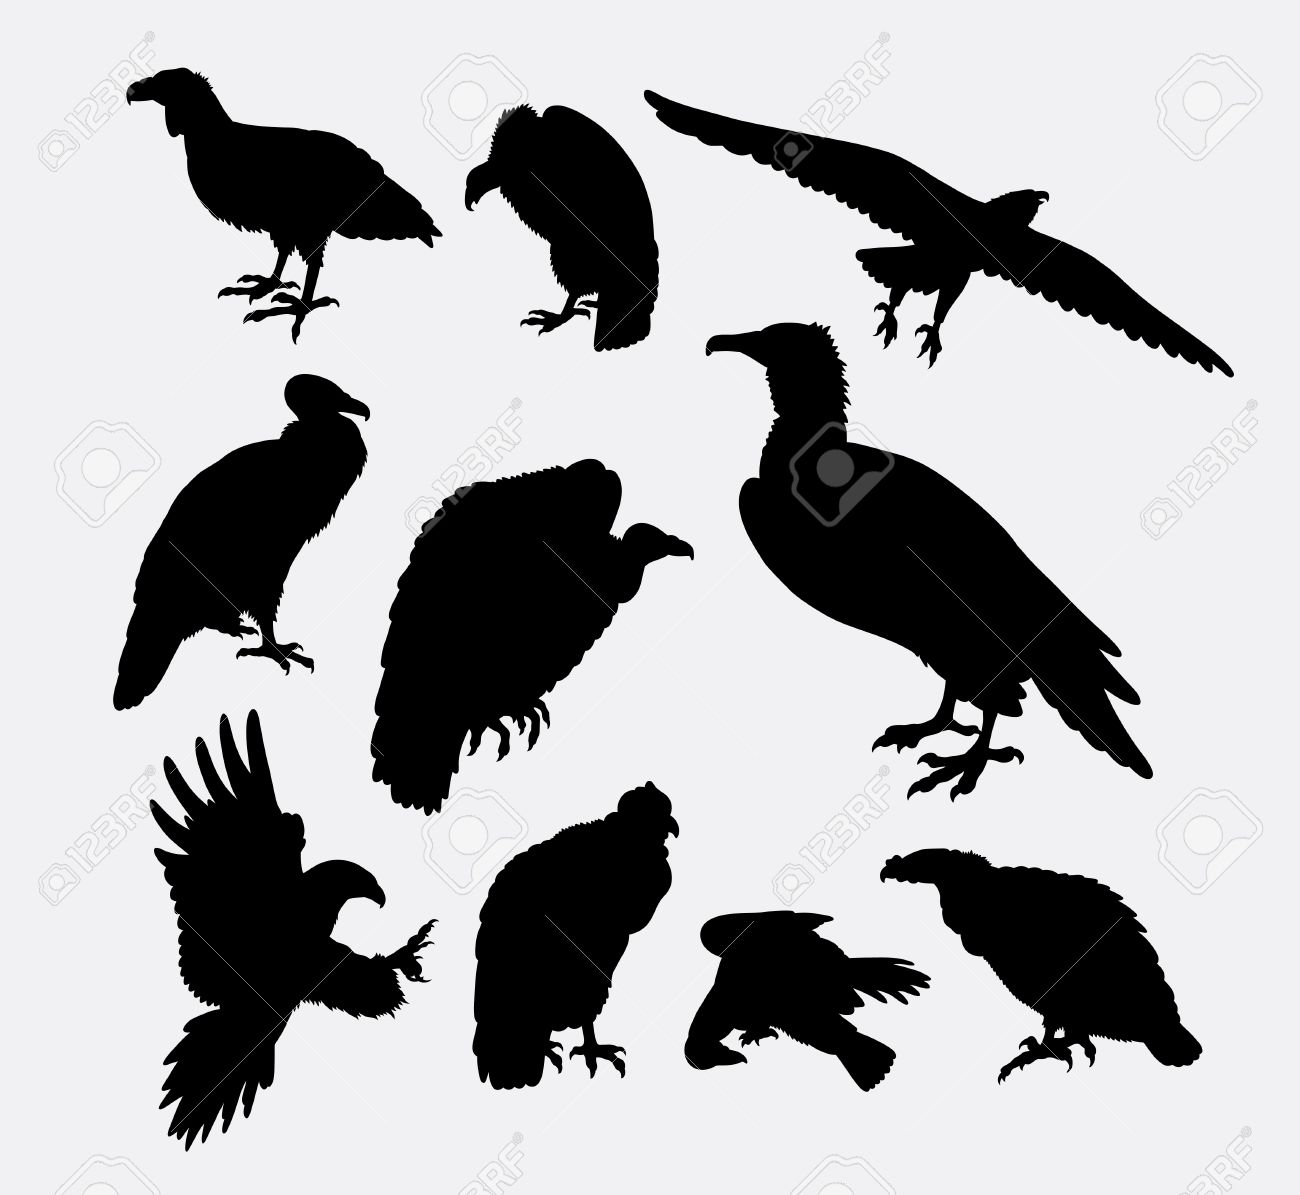 Condor vulture and eagle bird silhouette good use for symbol condor vulture and eagle bird silhouette good use for symbol logo biocorpaavc Gallery